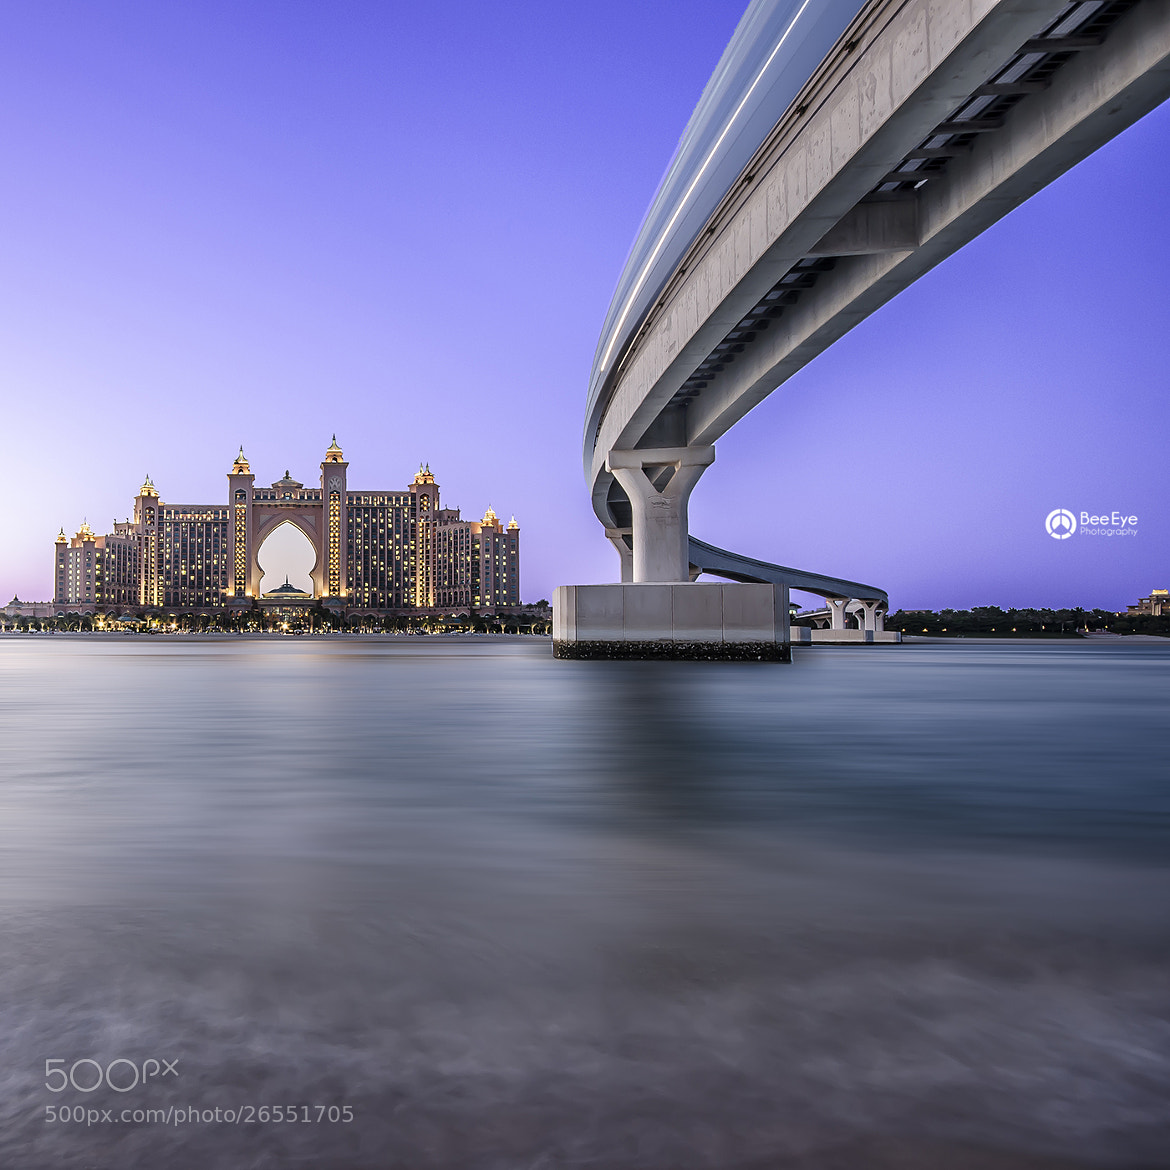 Photograph Atlantis Dubai by Bee Eye on 500px